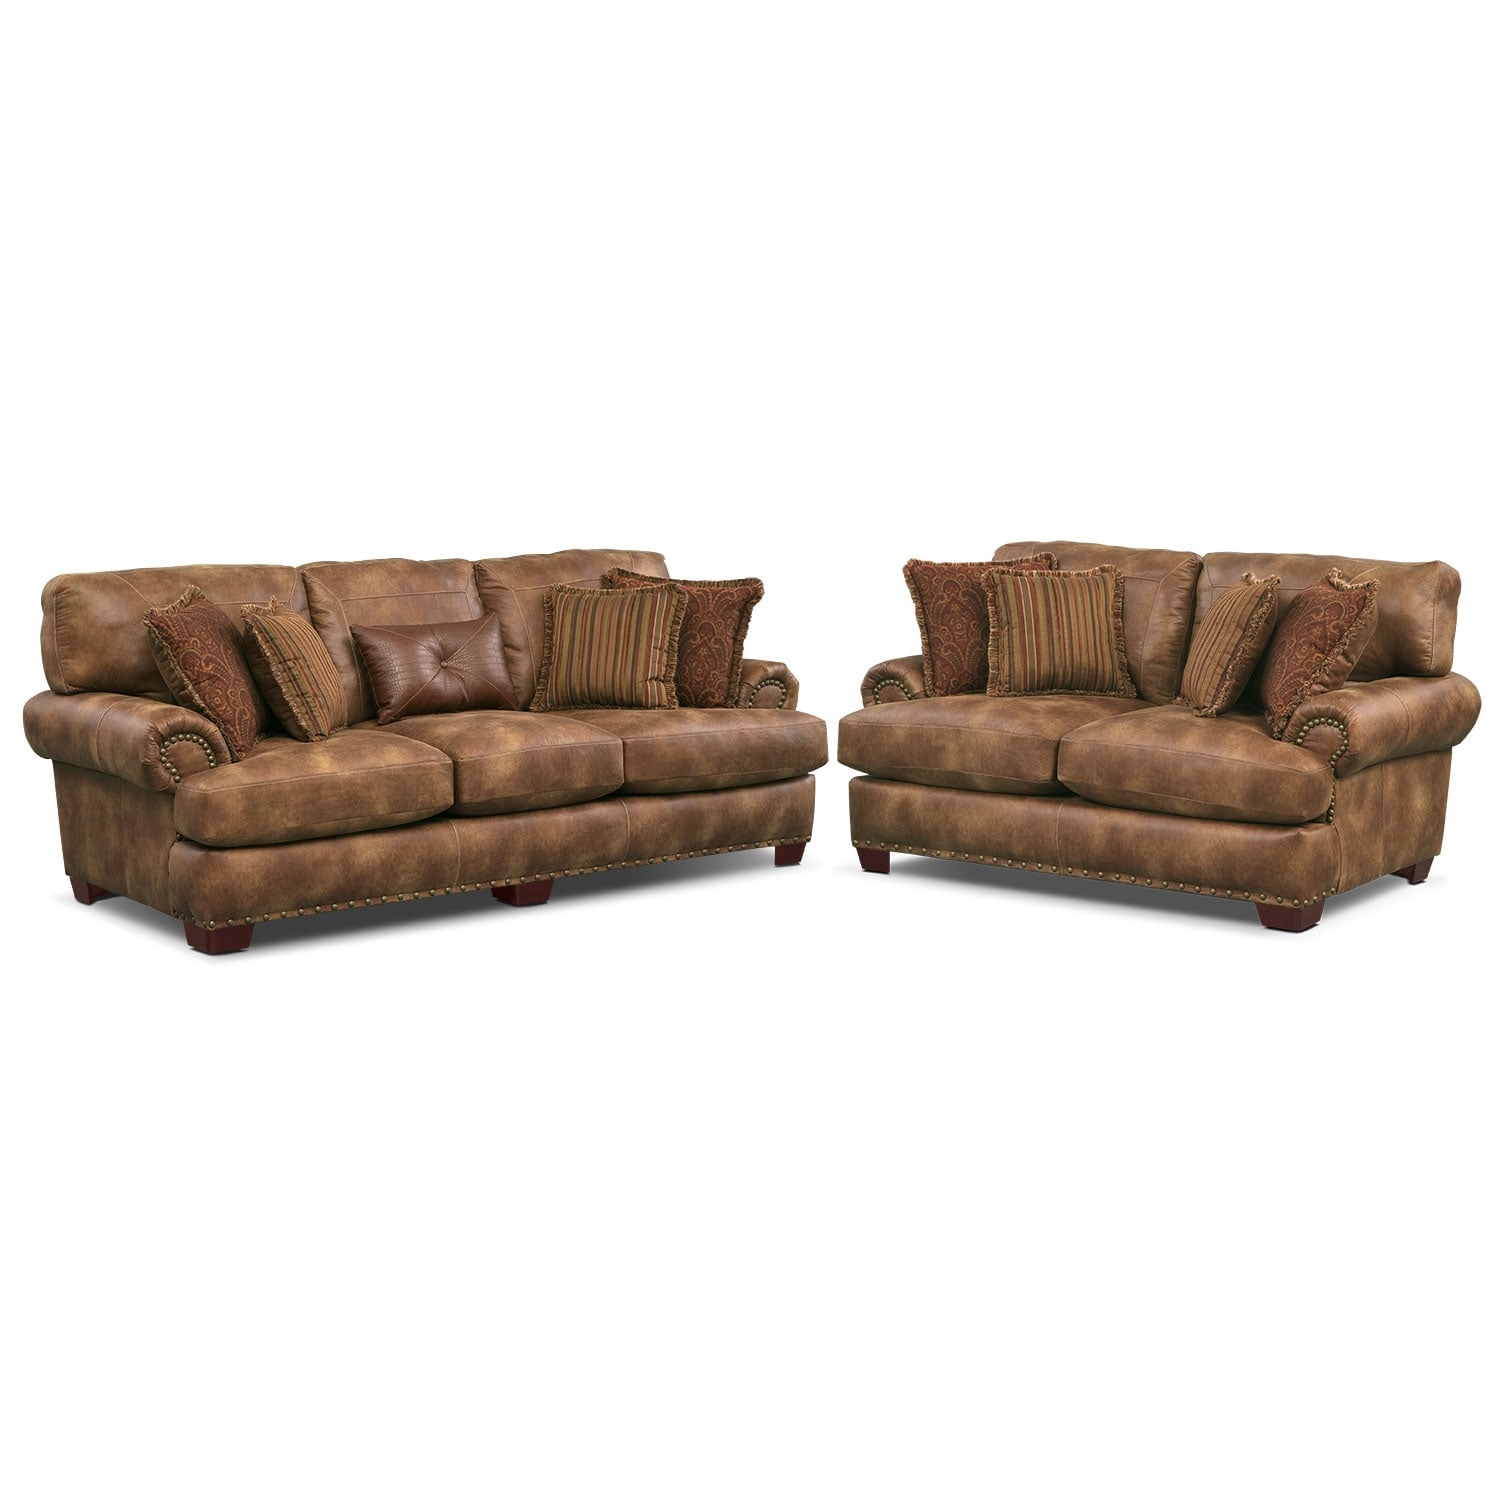 Living Room Furniture - Burlington 2 Pc. Living Room